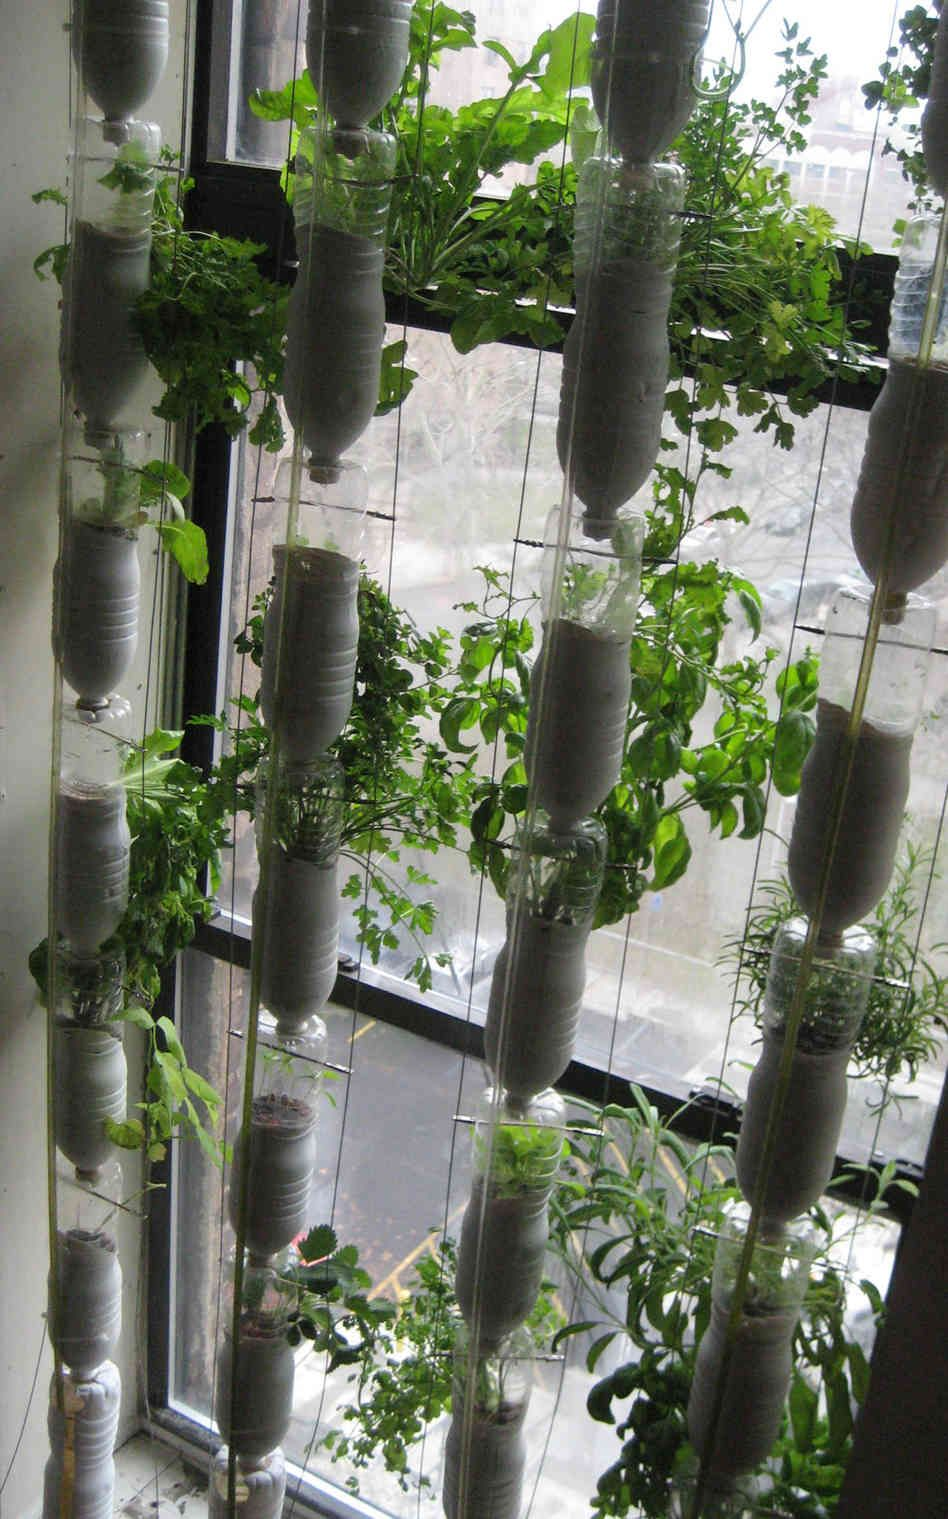 window farming: a do-it-yourself veggie venture | gardens, garden